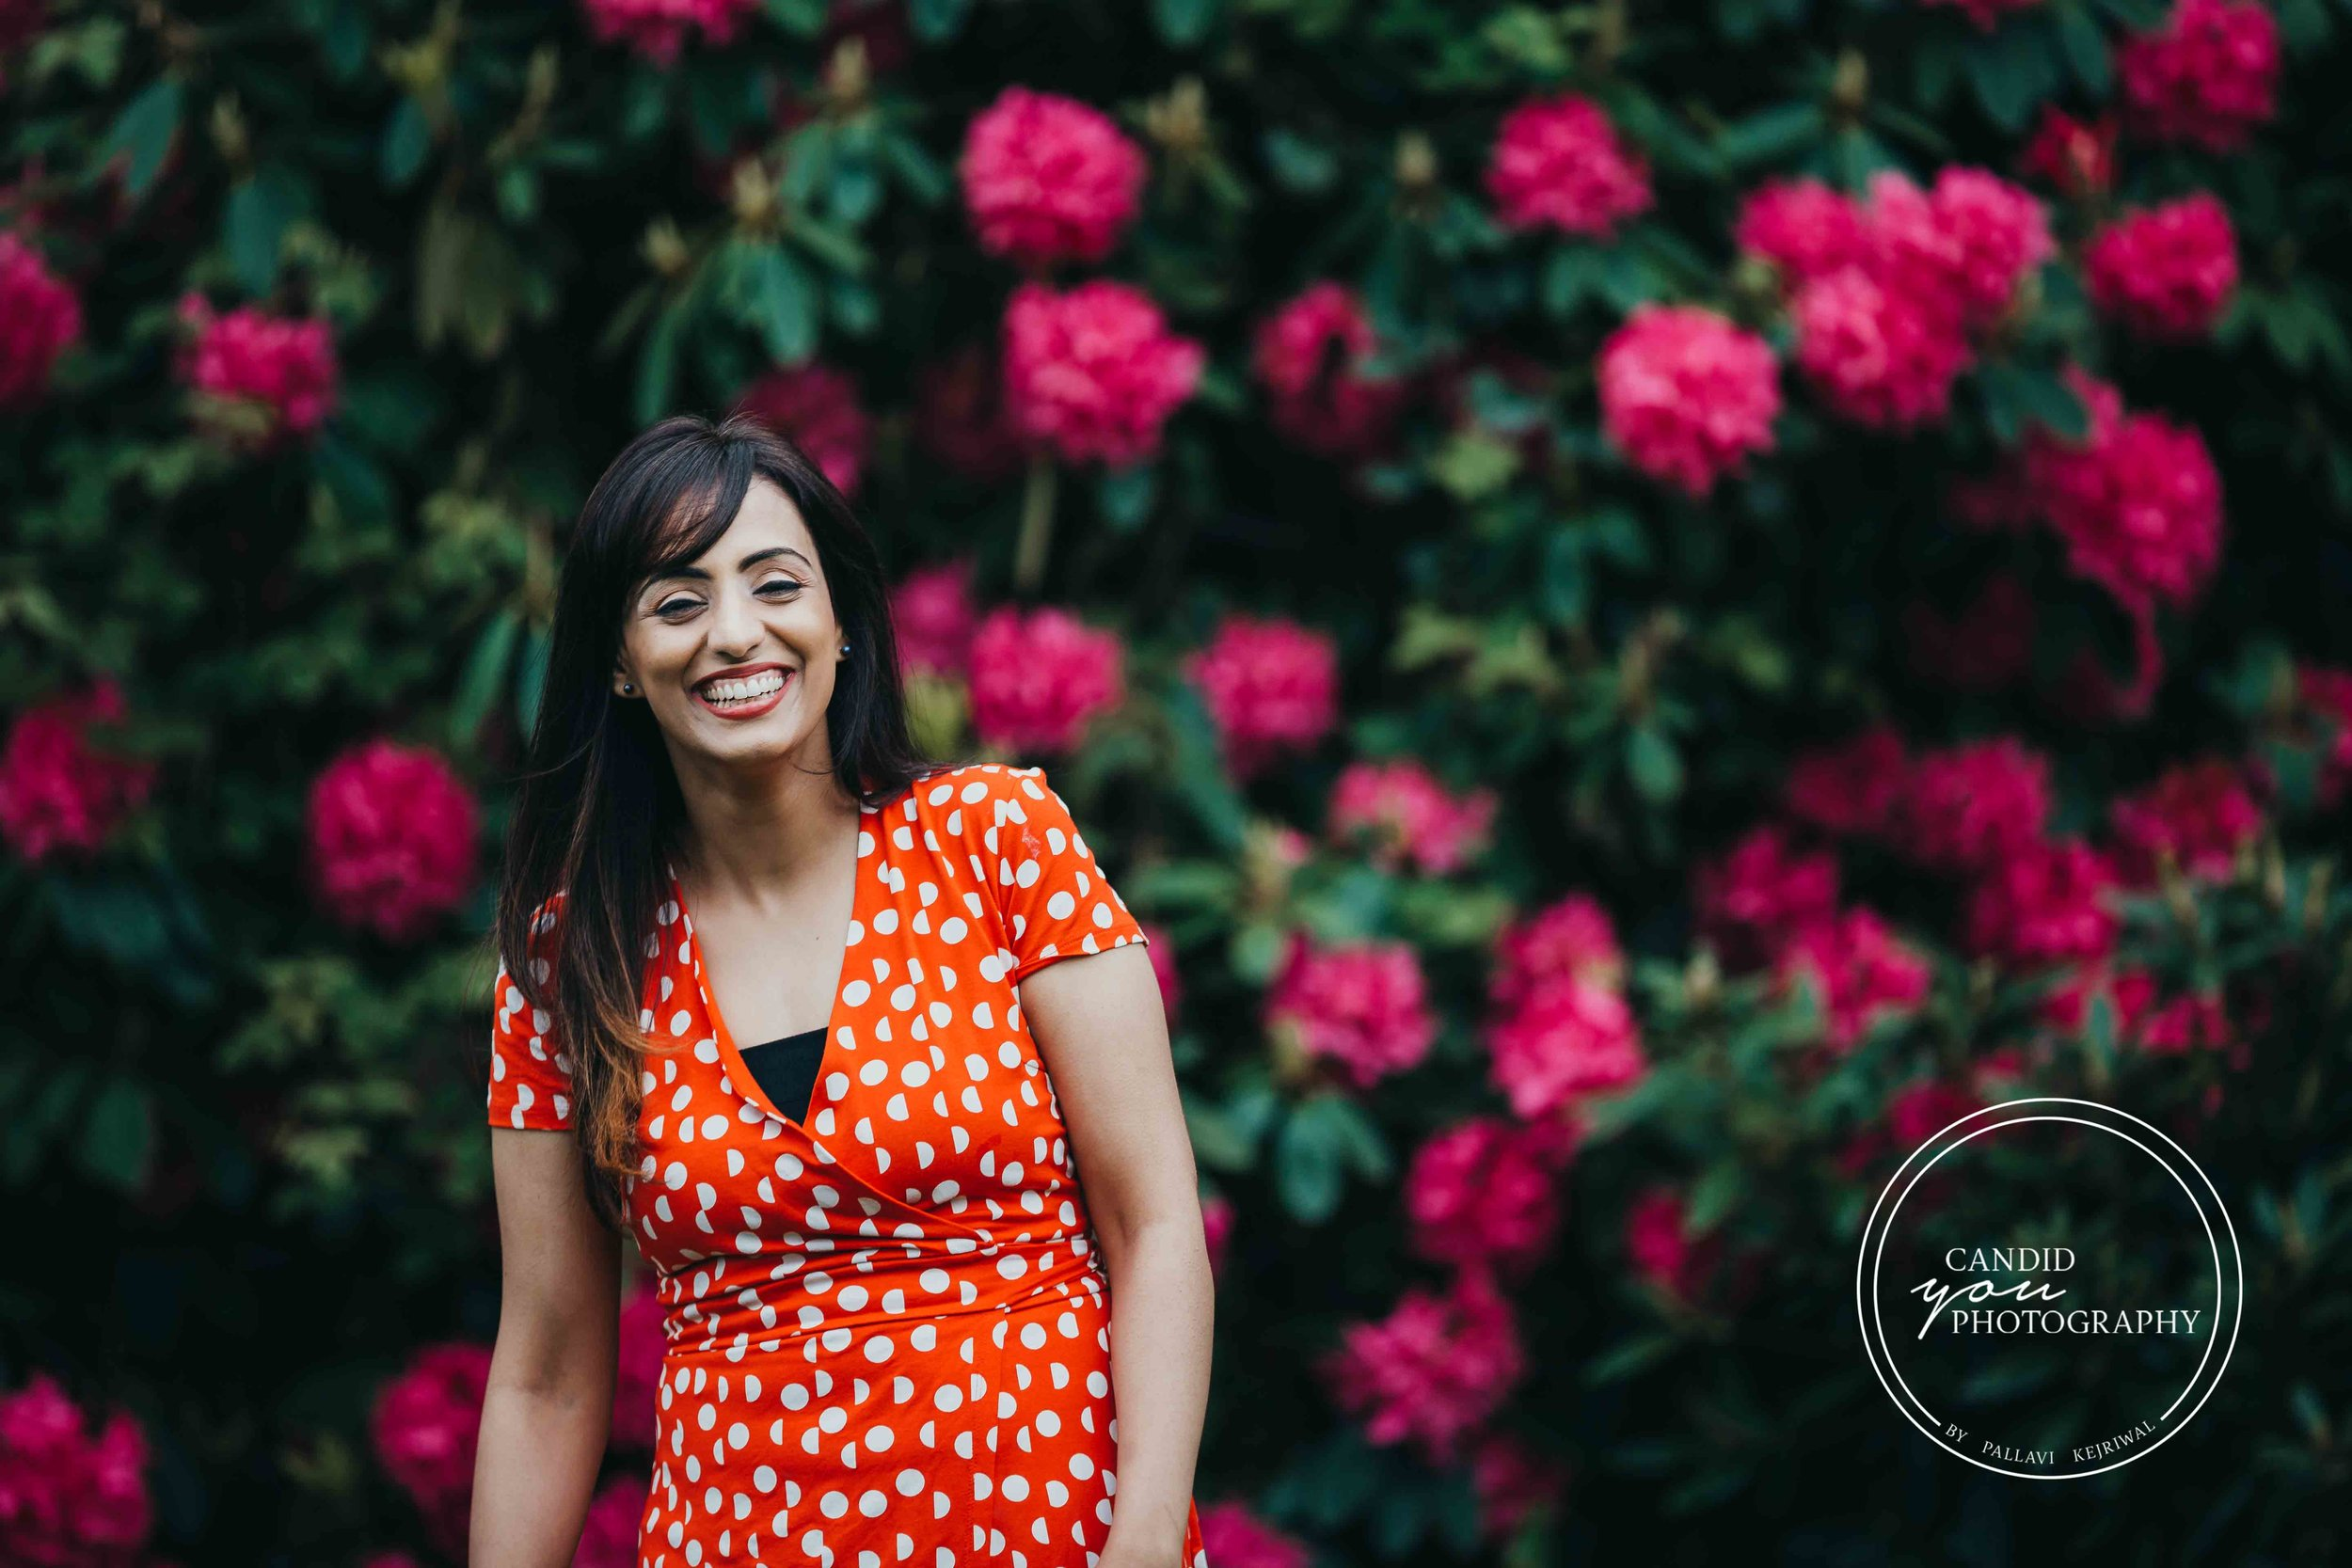 lady laughing in orange polka dot dress in front of pink flowers